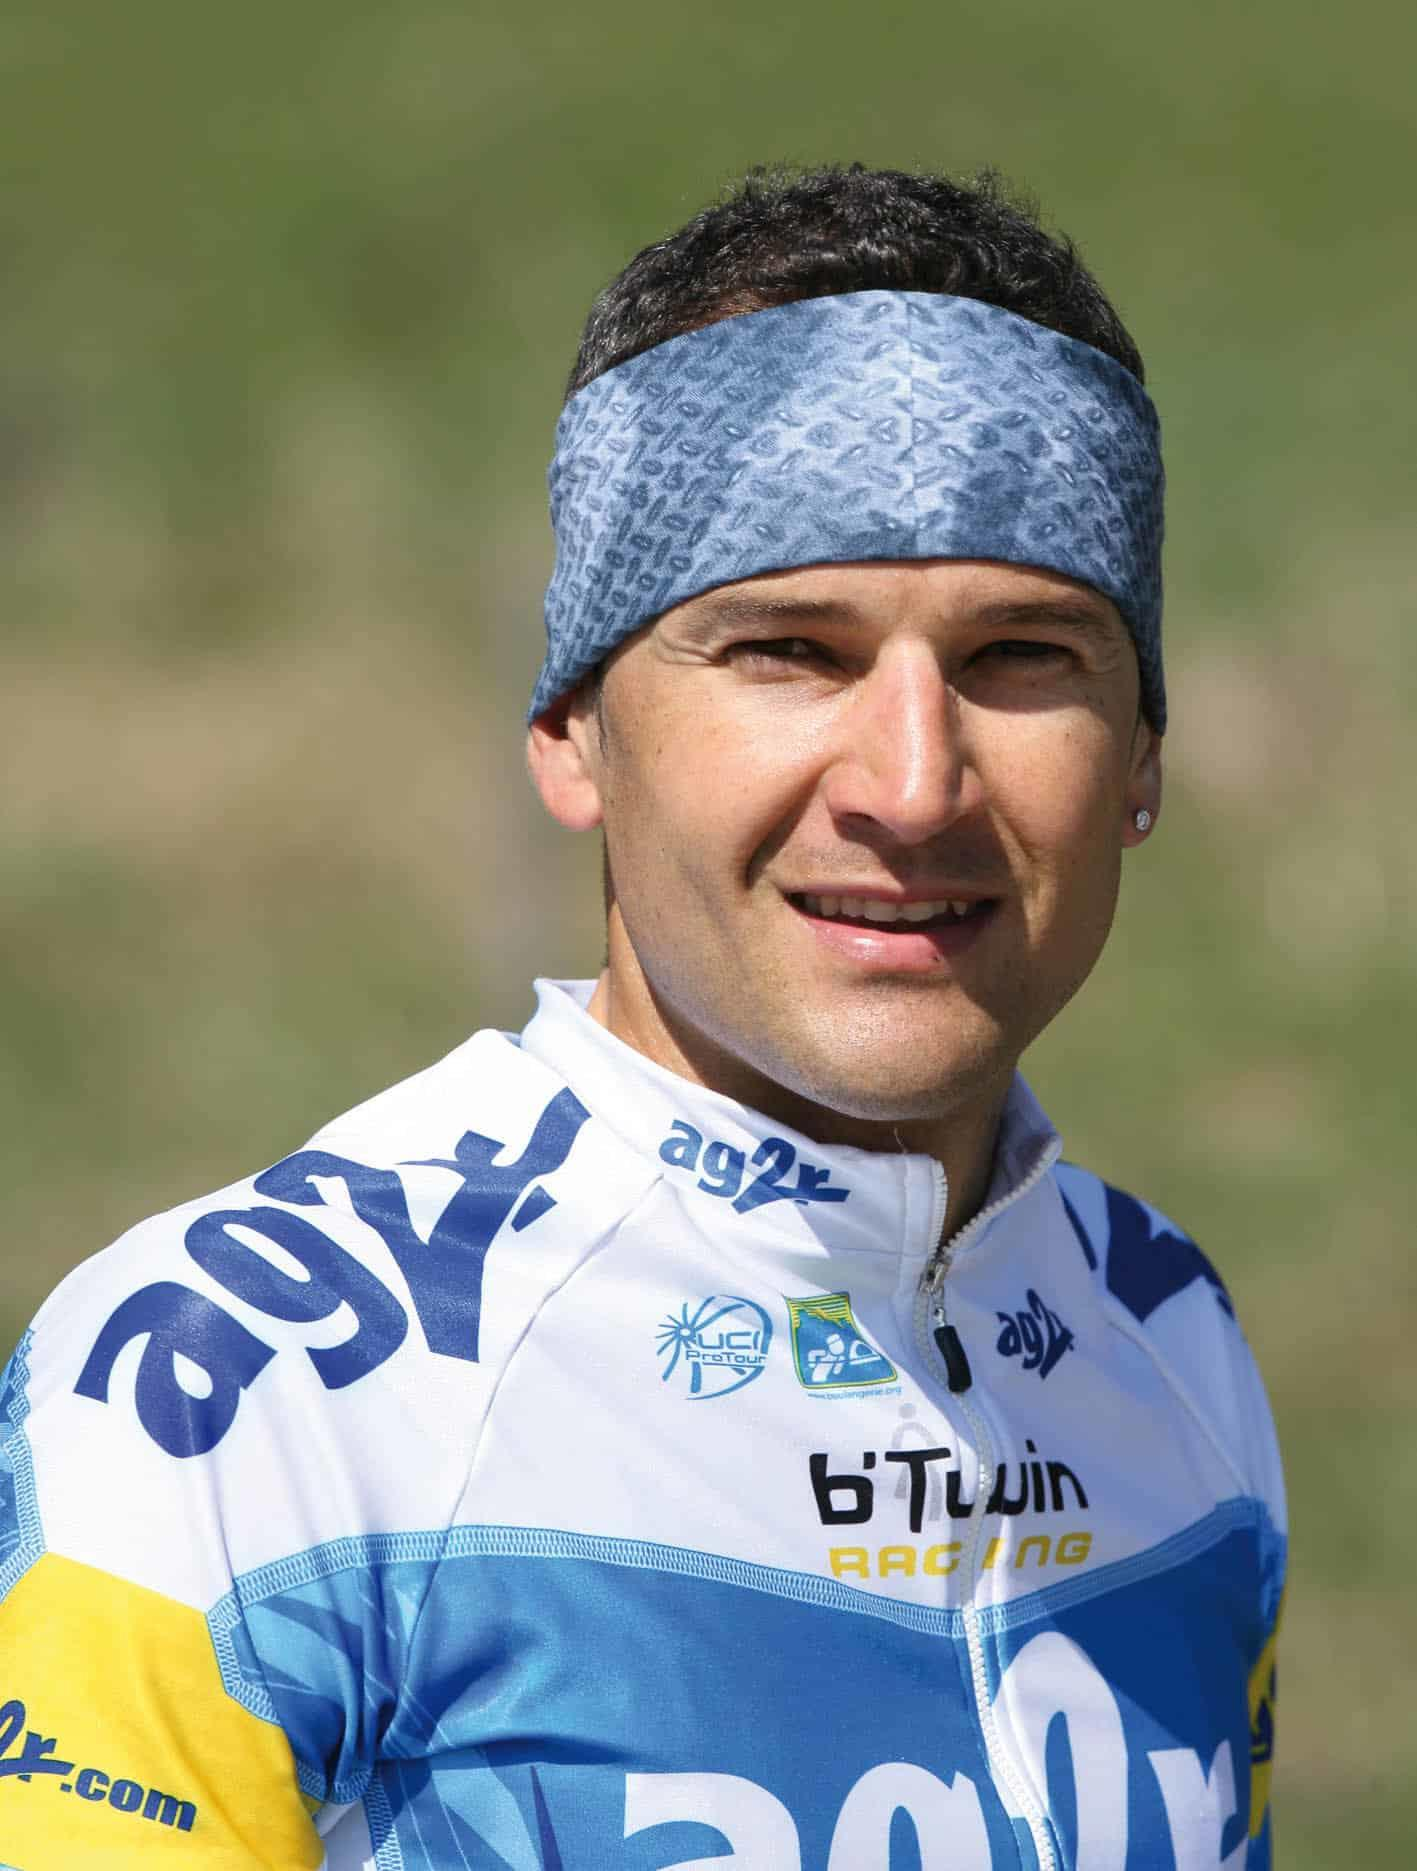 The photo shows a frontal upper body shot of Cyril Dessel before a 2006 Tour De France stage. He is wearing his AG2R team jersey and a Original Buff® as headband. The shun is shining and he looks at ease. Source: buff.eu Copyright: Distributed for the promotion of Original Buff® products